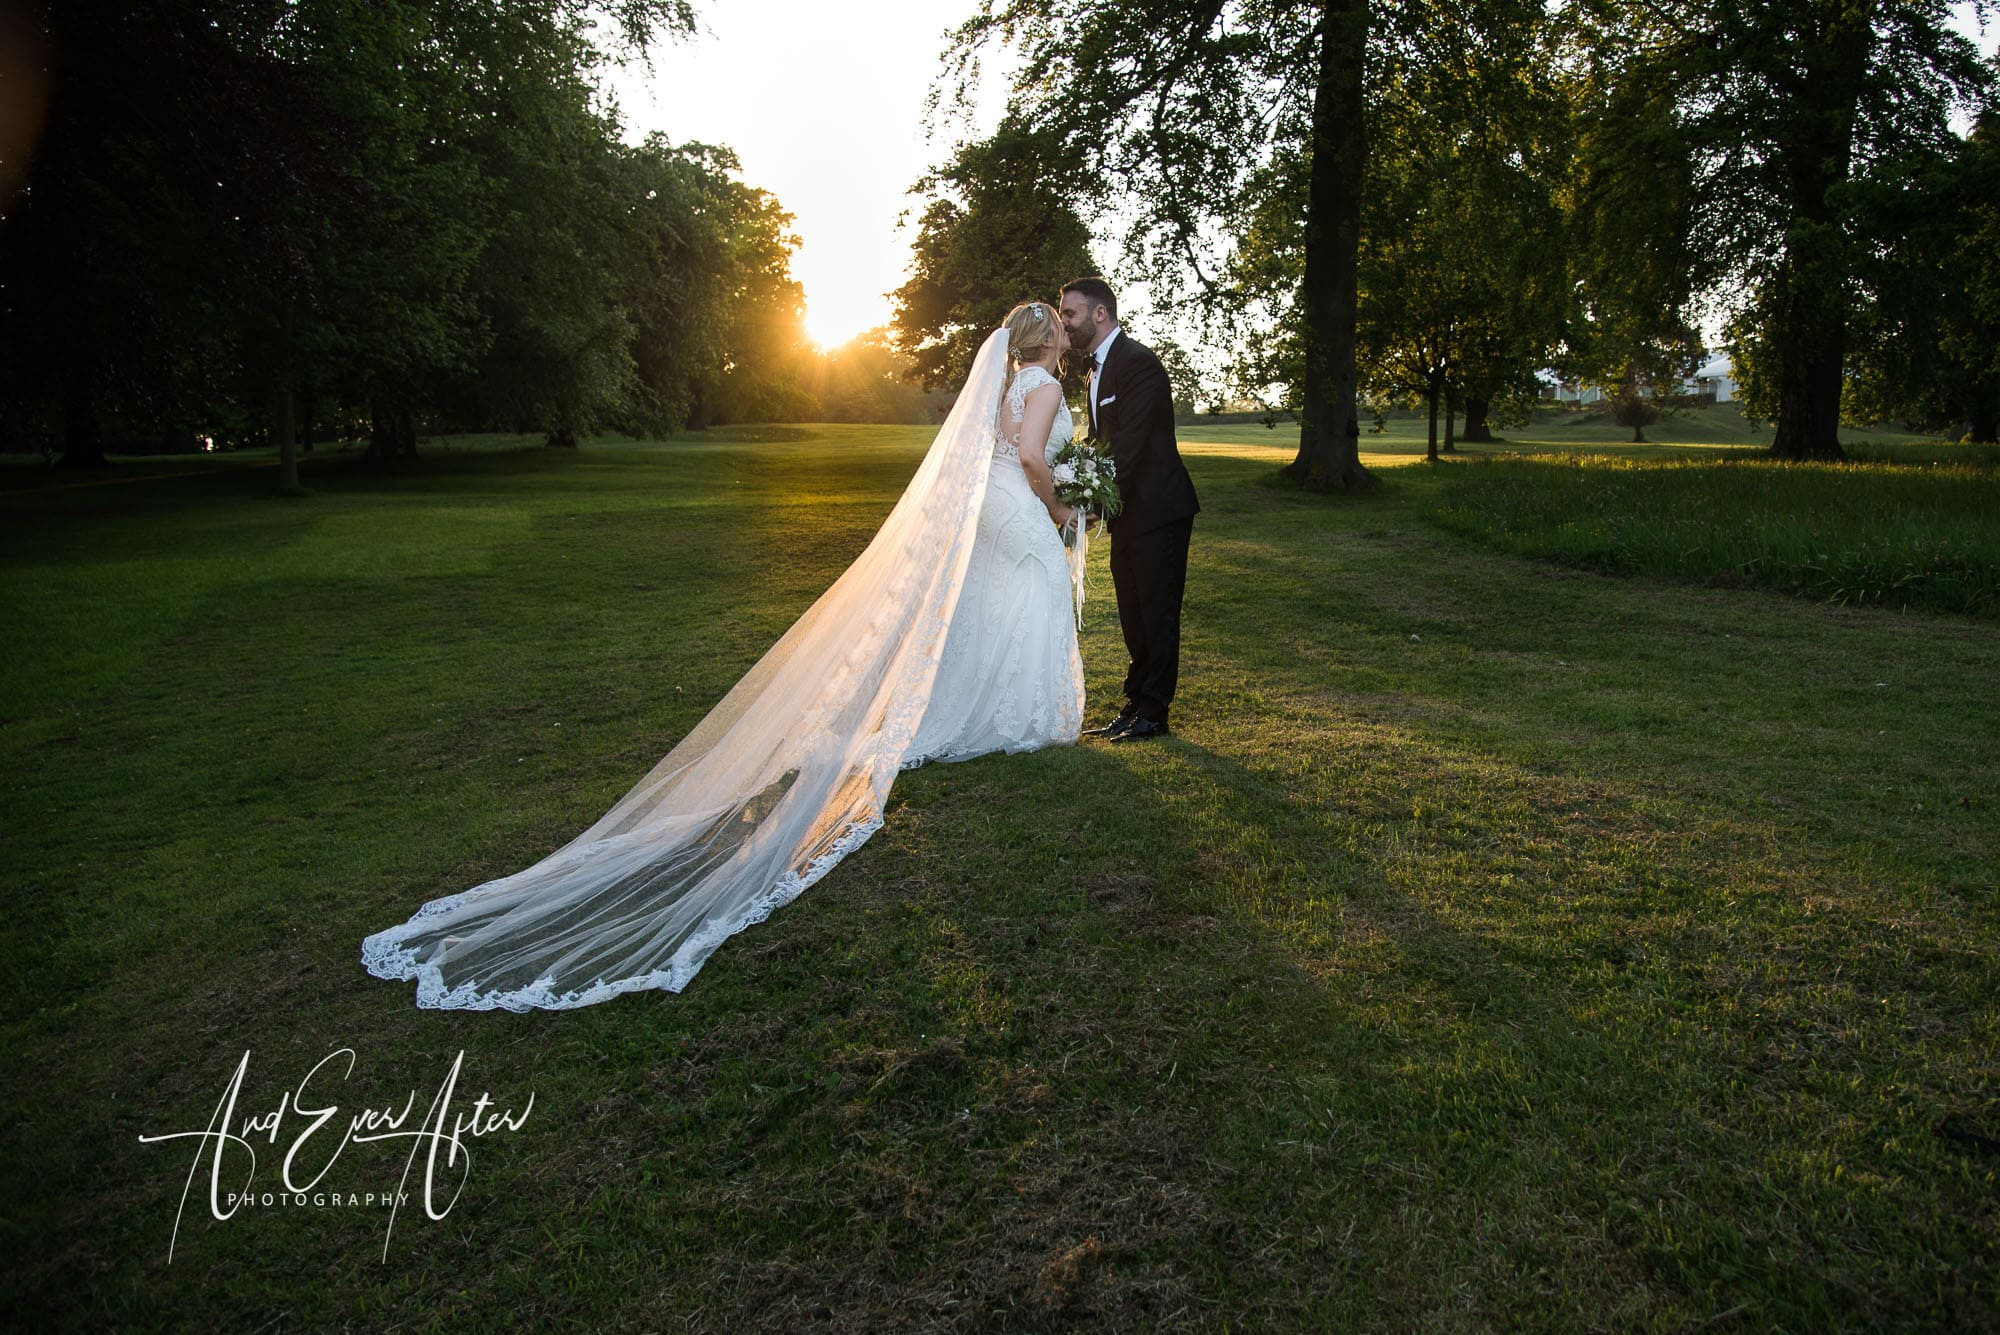 evening sunshine, wedding day